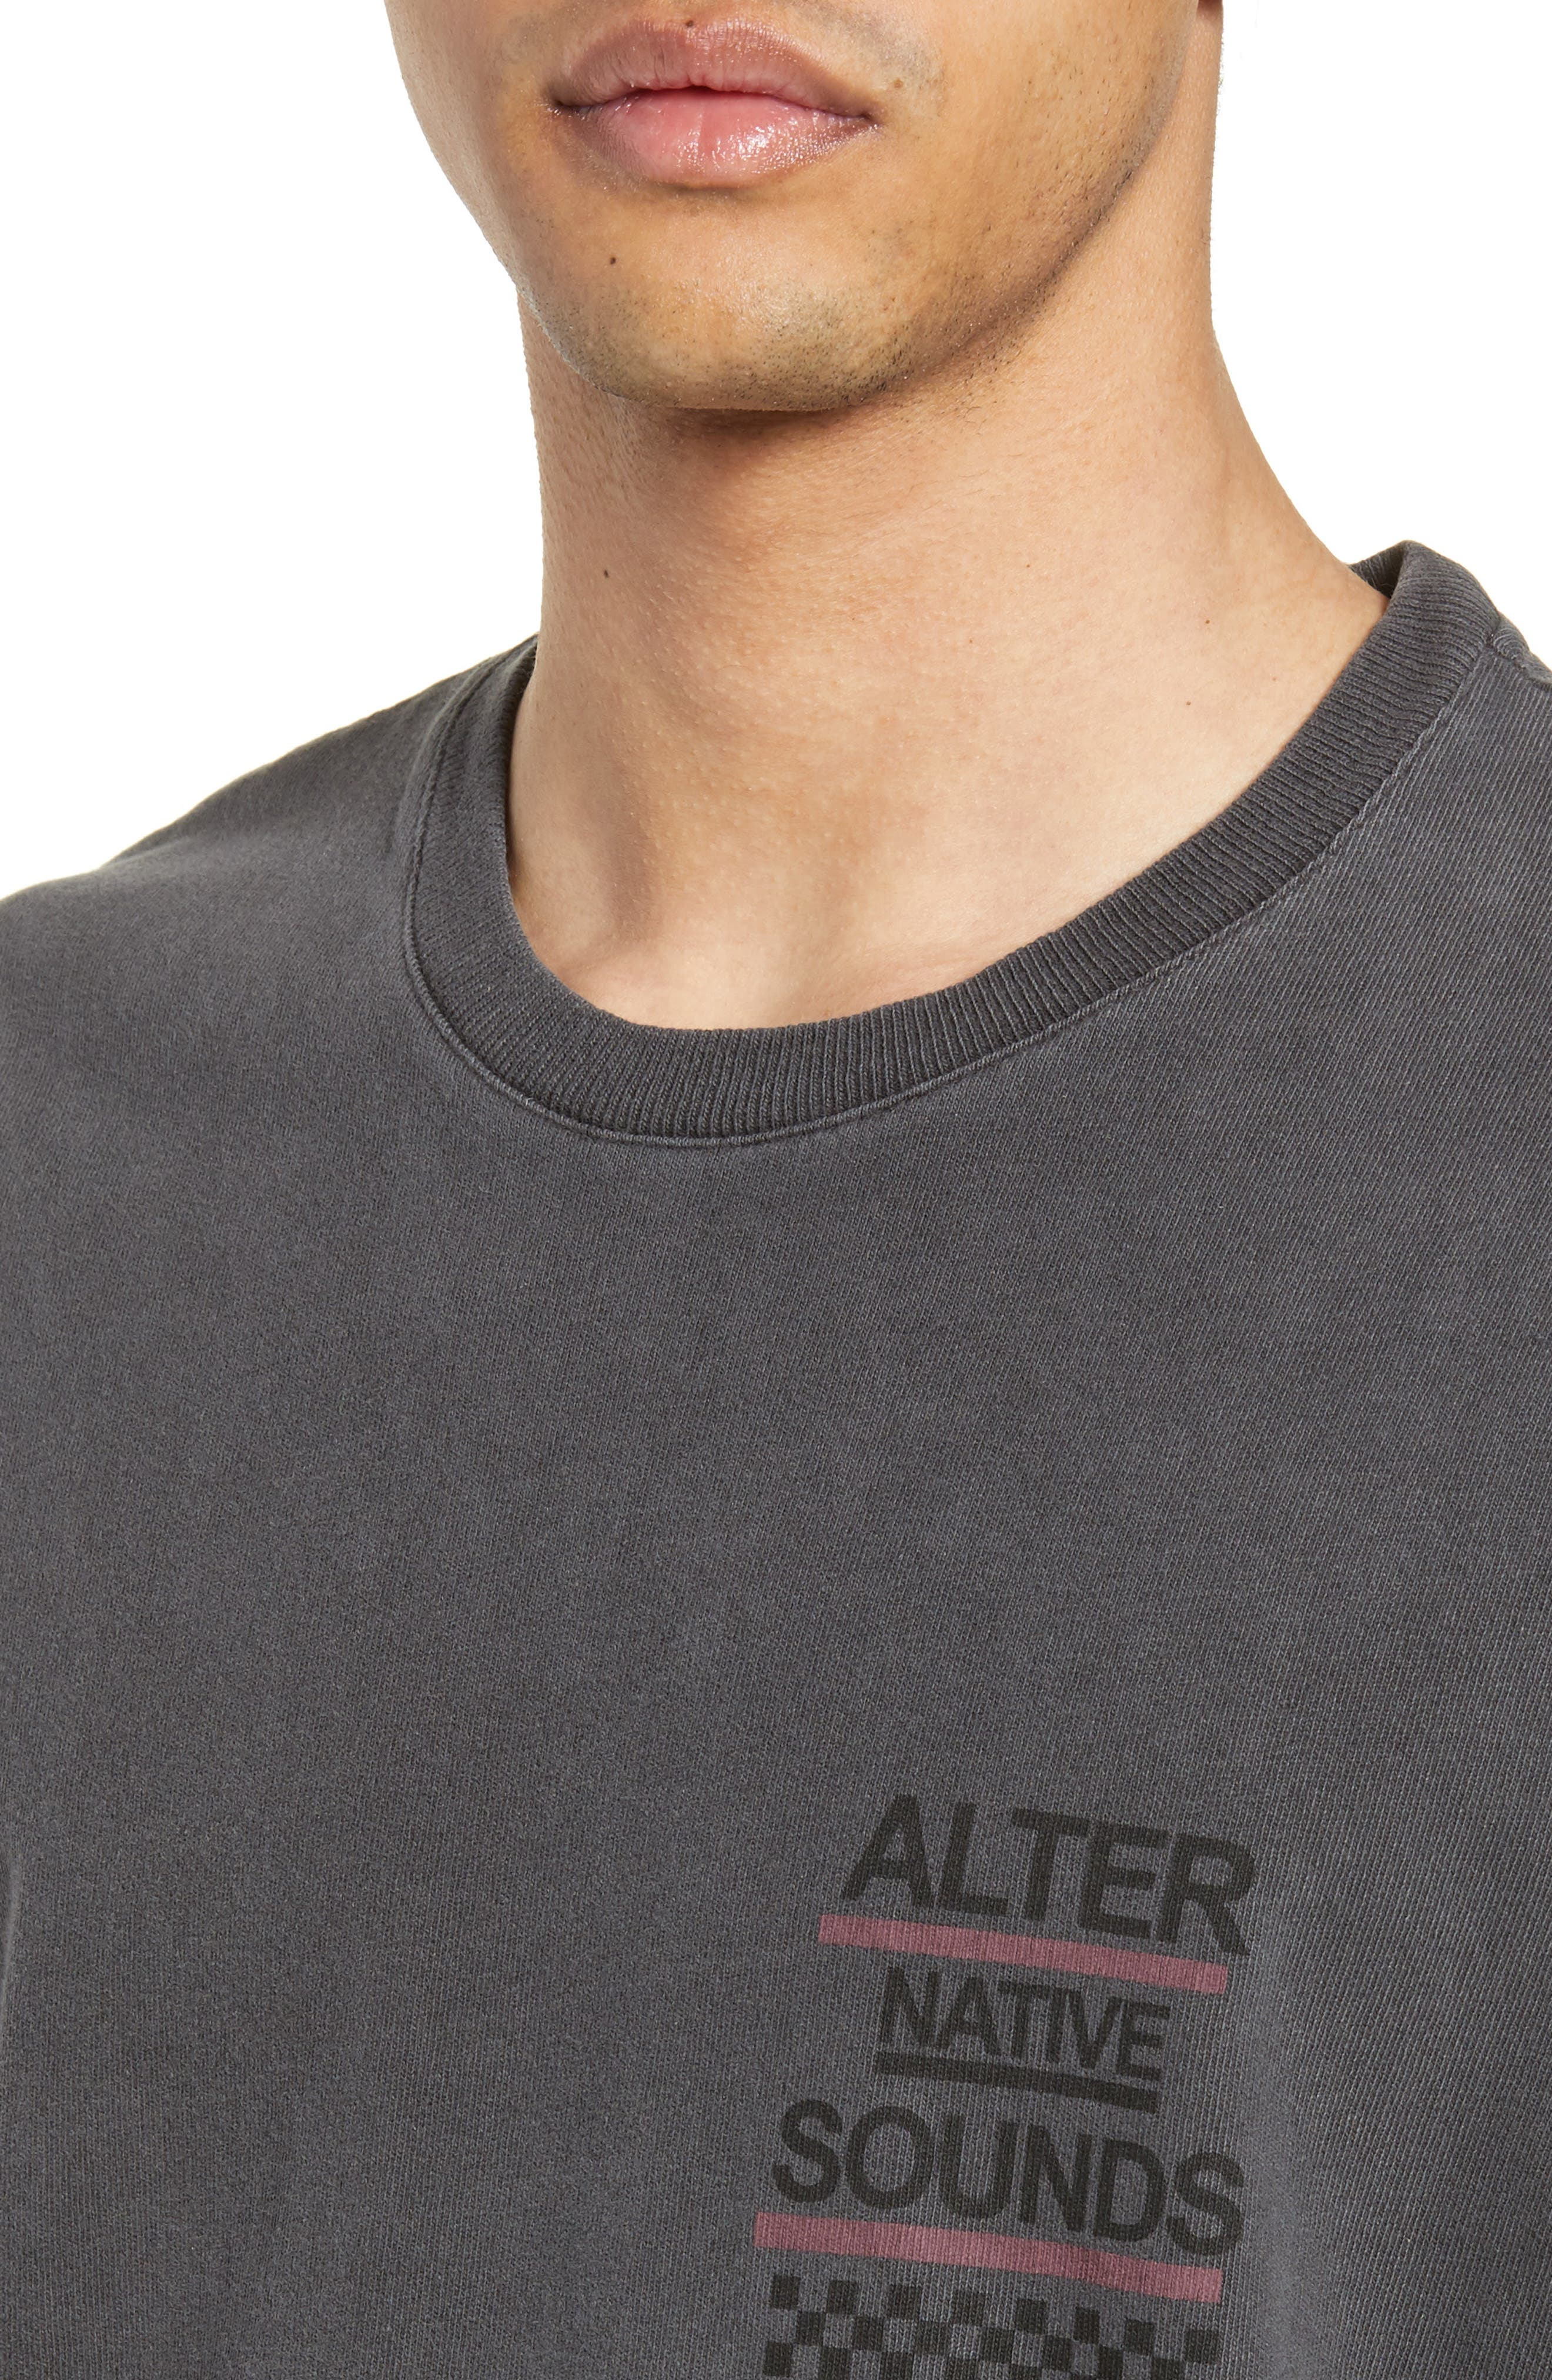 THE KOOPLES, Graphic T-Shirt, Alternate thumbnail 4, color, WASHED GREY